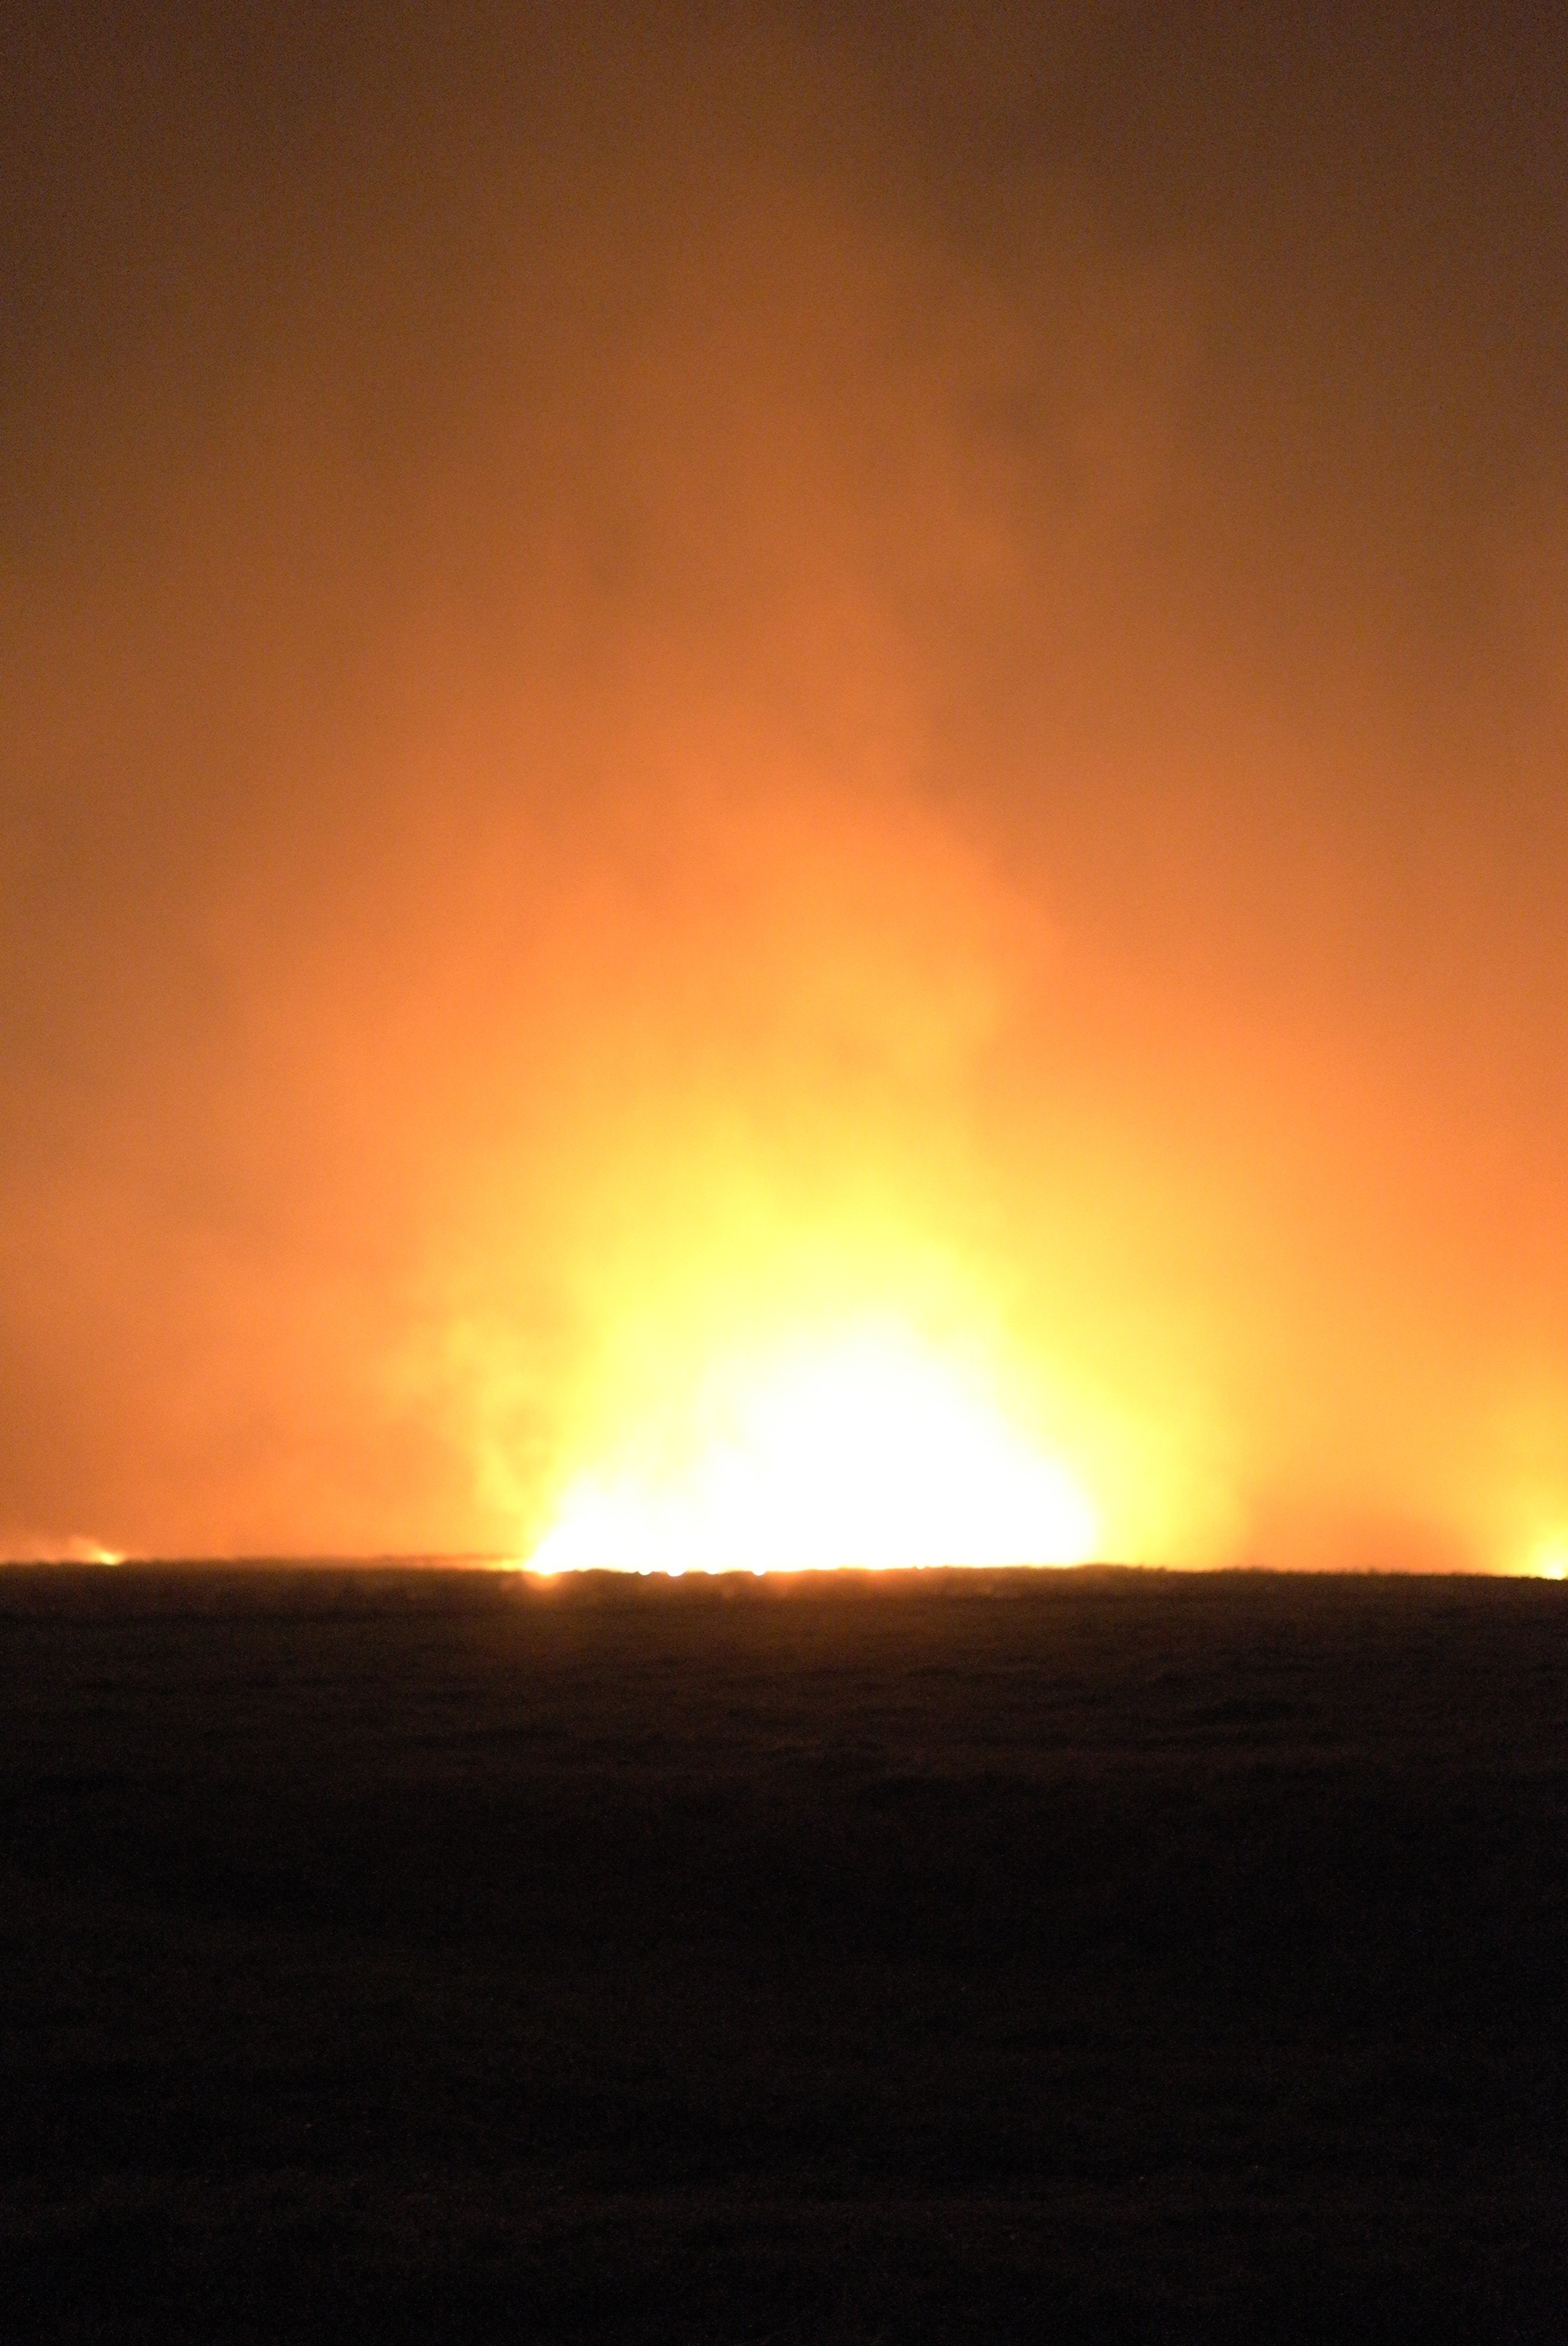 A nighttime image of a large fire burning on the horizon of a dark prairie